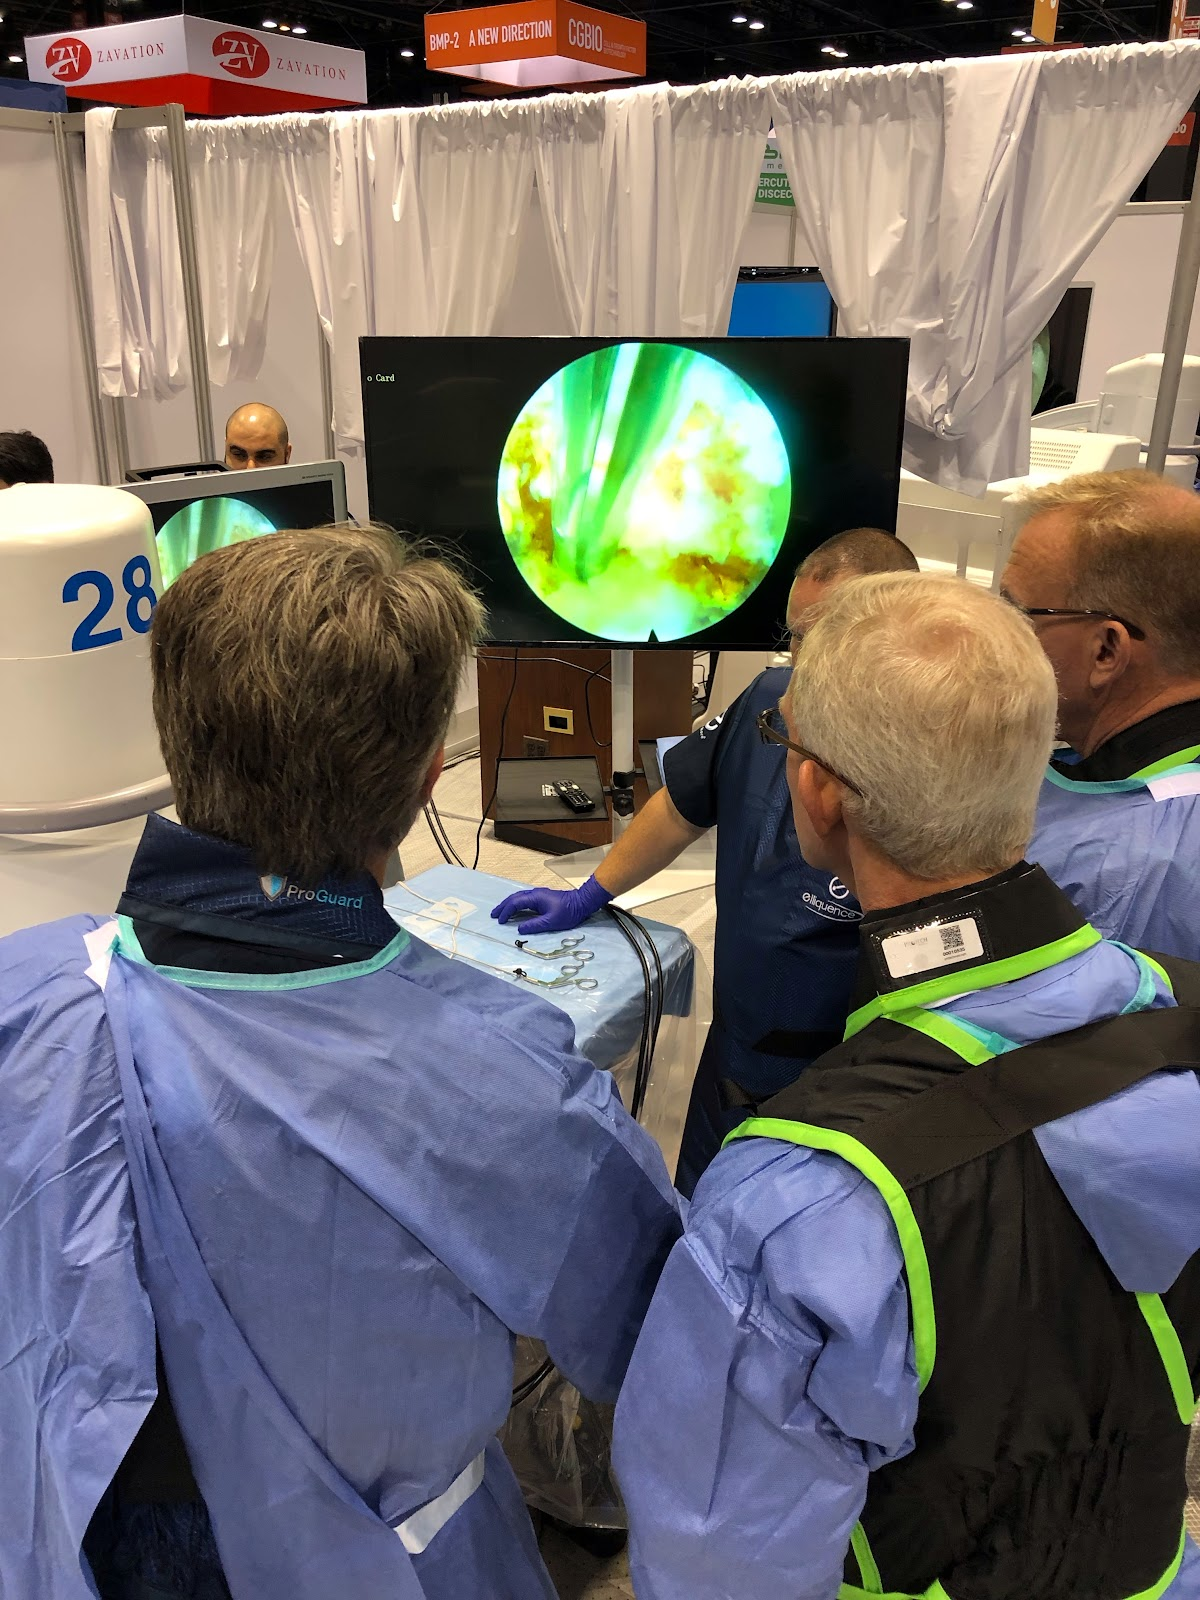 Dr. Hanson instructs a hands-on workshop at the NASS conference in Chicago, IL.